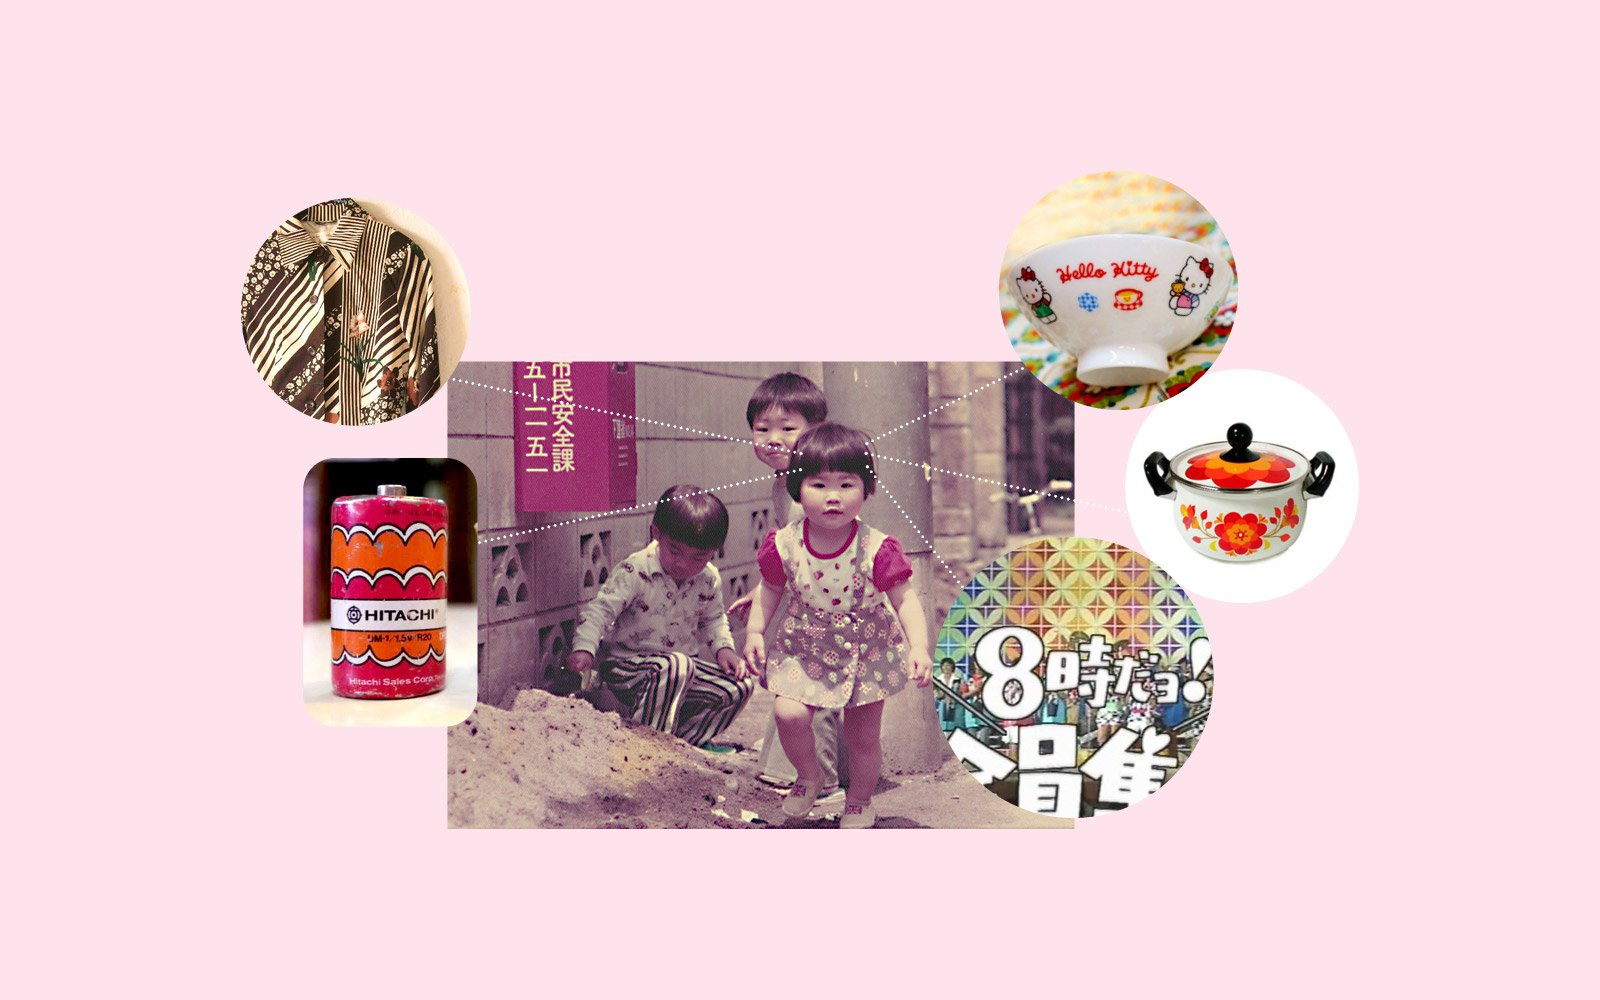 Moodboard of Japanese designer June Mineyama-Smithson and her childhood influences including colourful patterns of the 70s and 80s